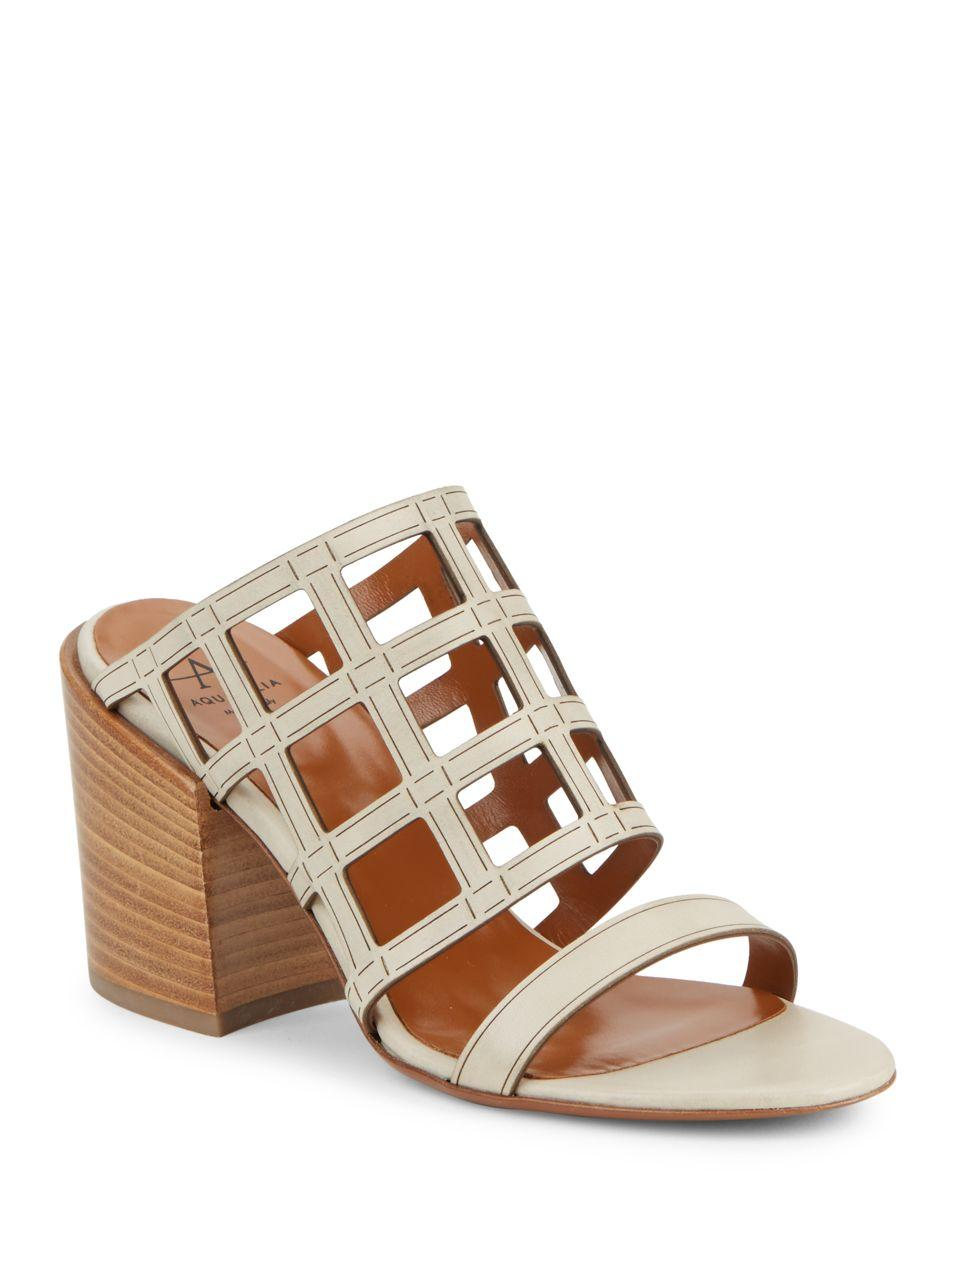 2b8f5aaa3169a Lyst - Aquatalia Frederica Leather Cutout Sandals in Brown